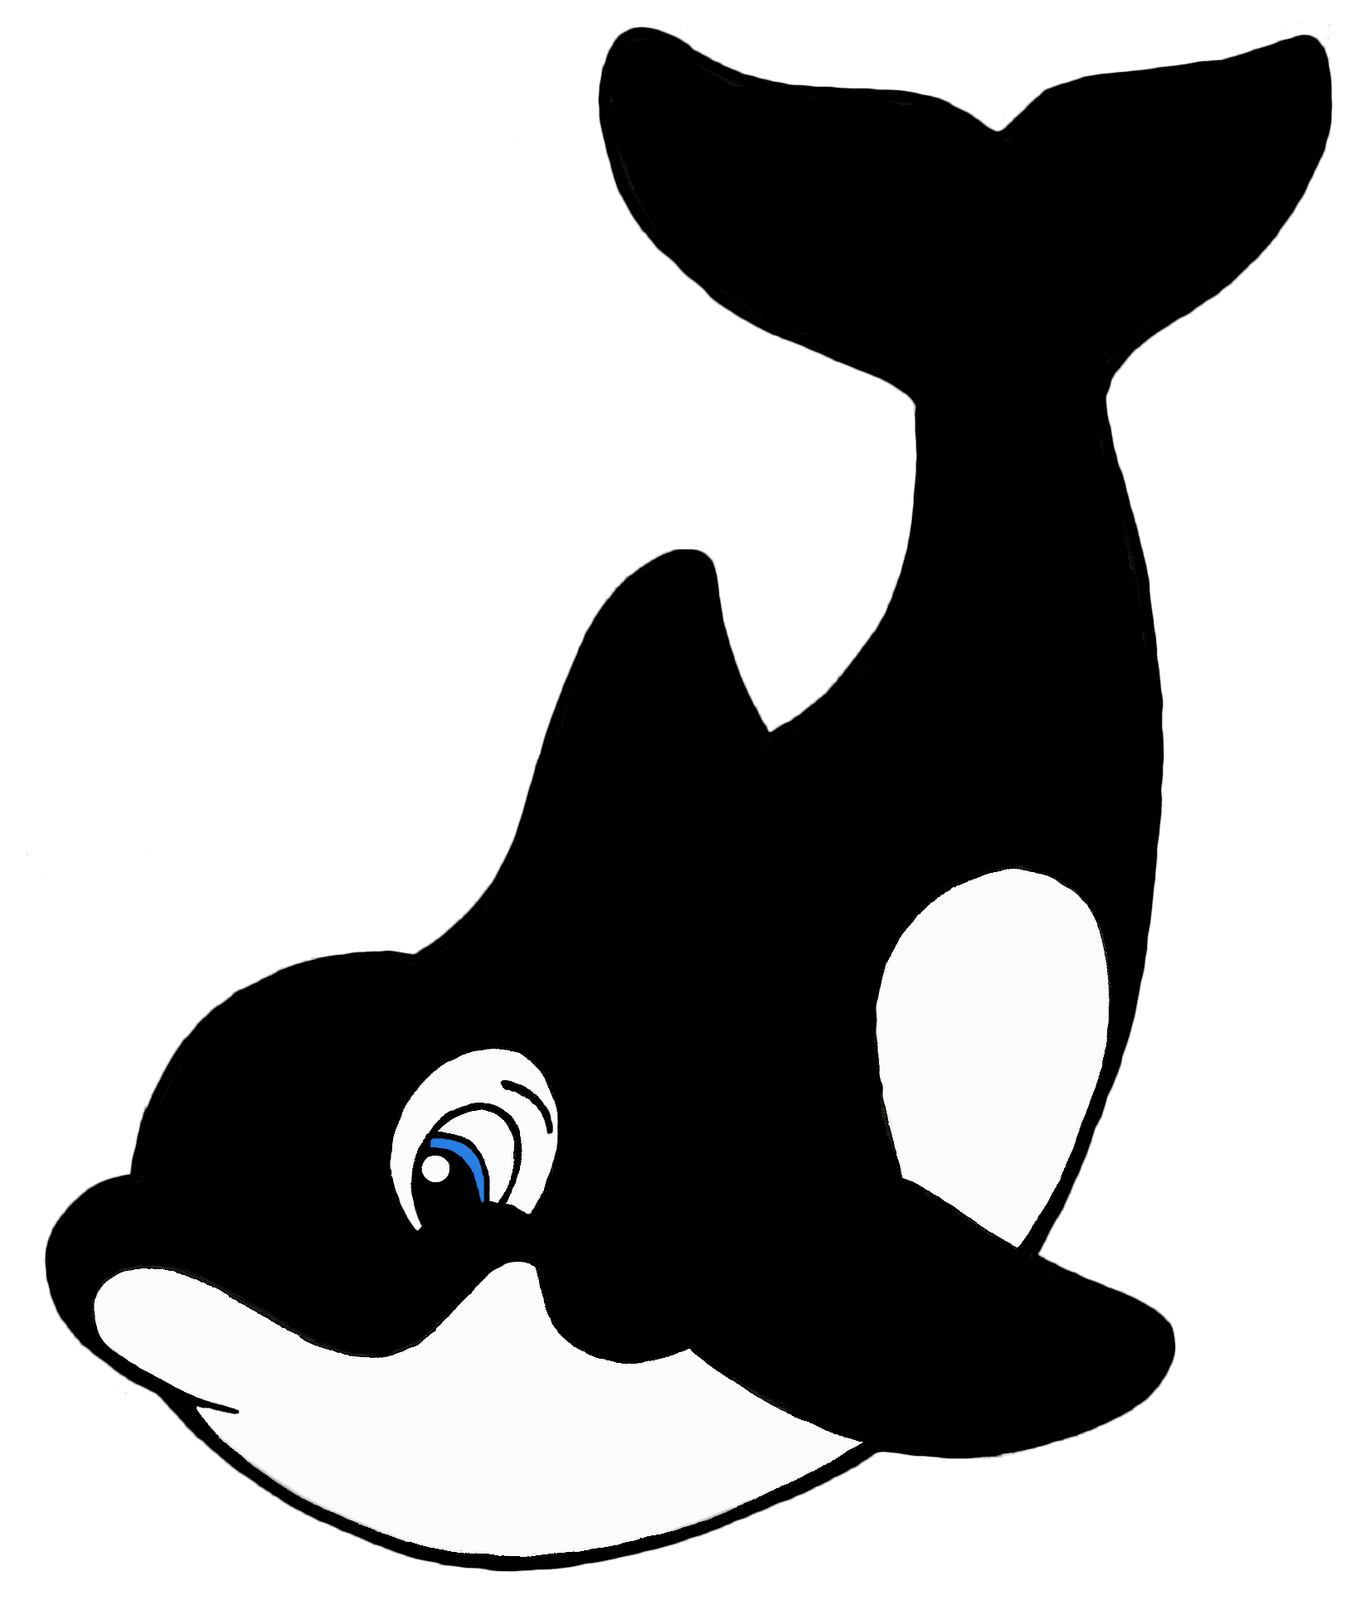 Killer Whale clipart #16, Download drawings